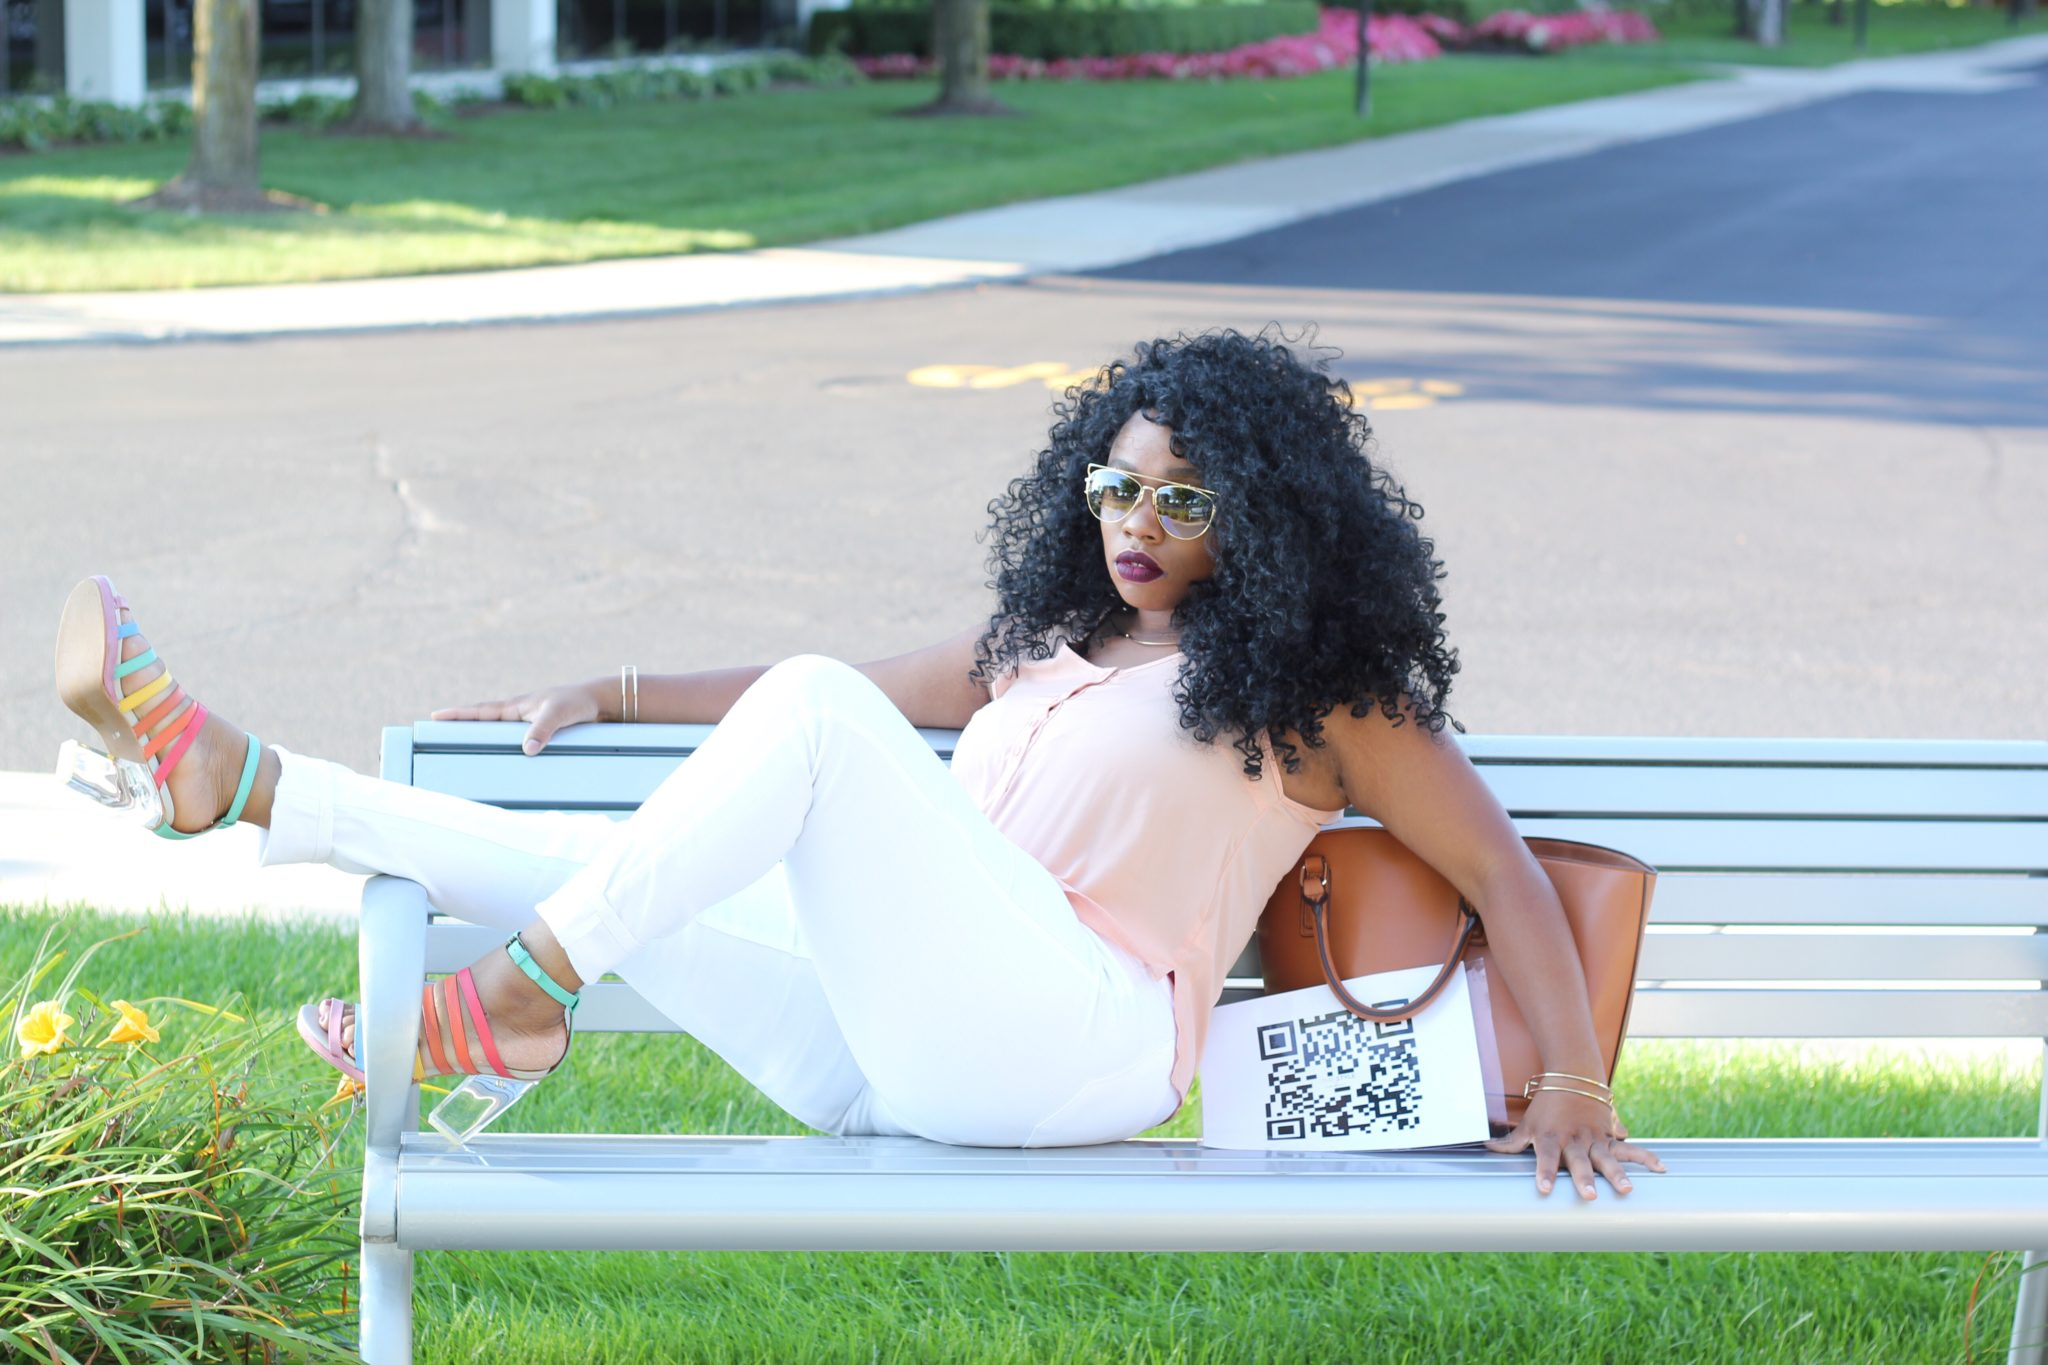 publish_snapshot-2-6 Living for the Weekend! Fashion Fashion Nova Forever 21 Jeffrey Campbell Shoes Justfab OOTD Styling Thrifting Uncategorized